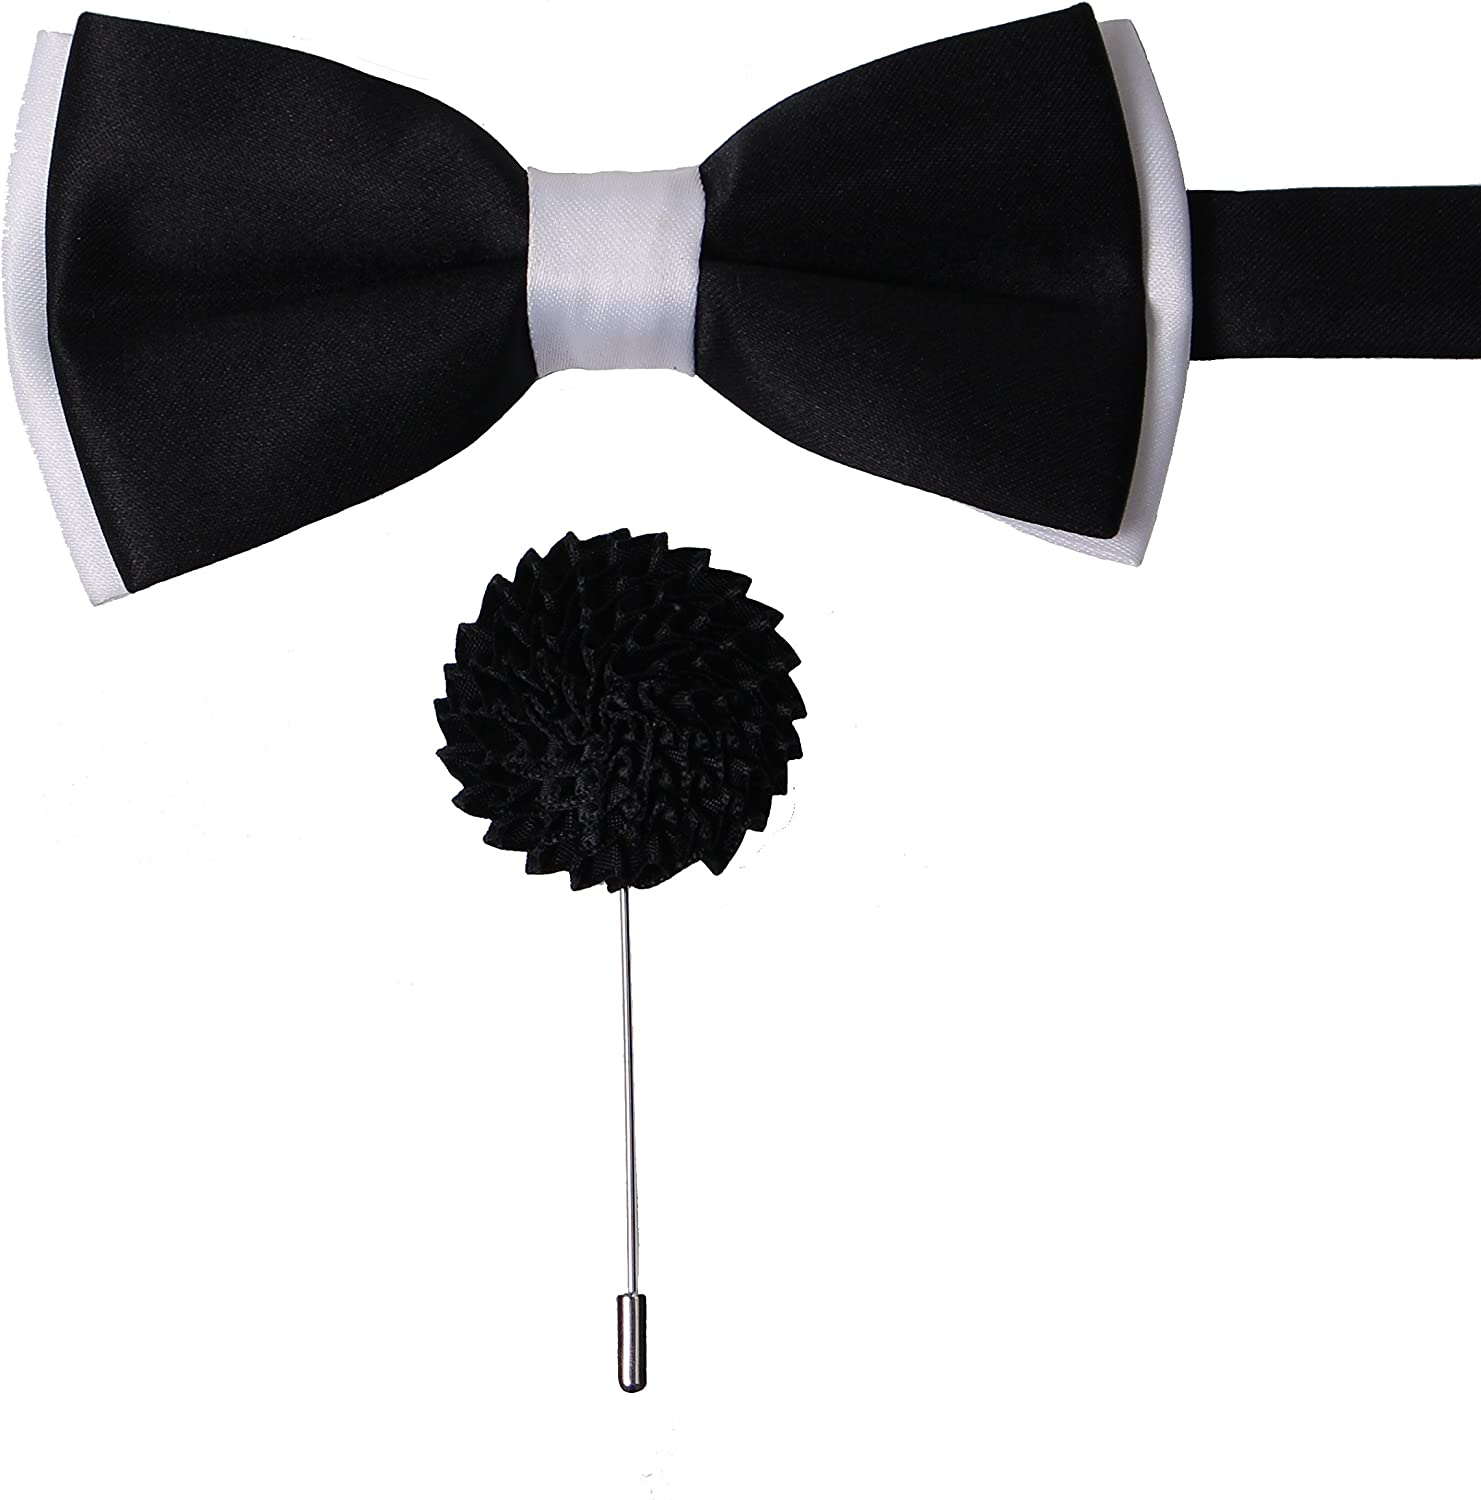 New formal ribbon Brooch Bow tie White elegant wedding gift adjustable straps